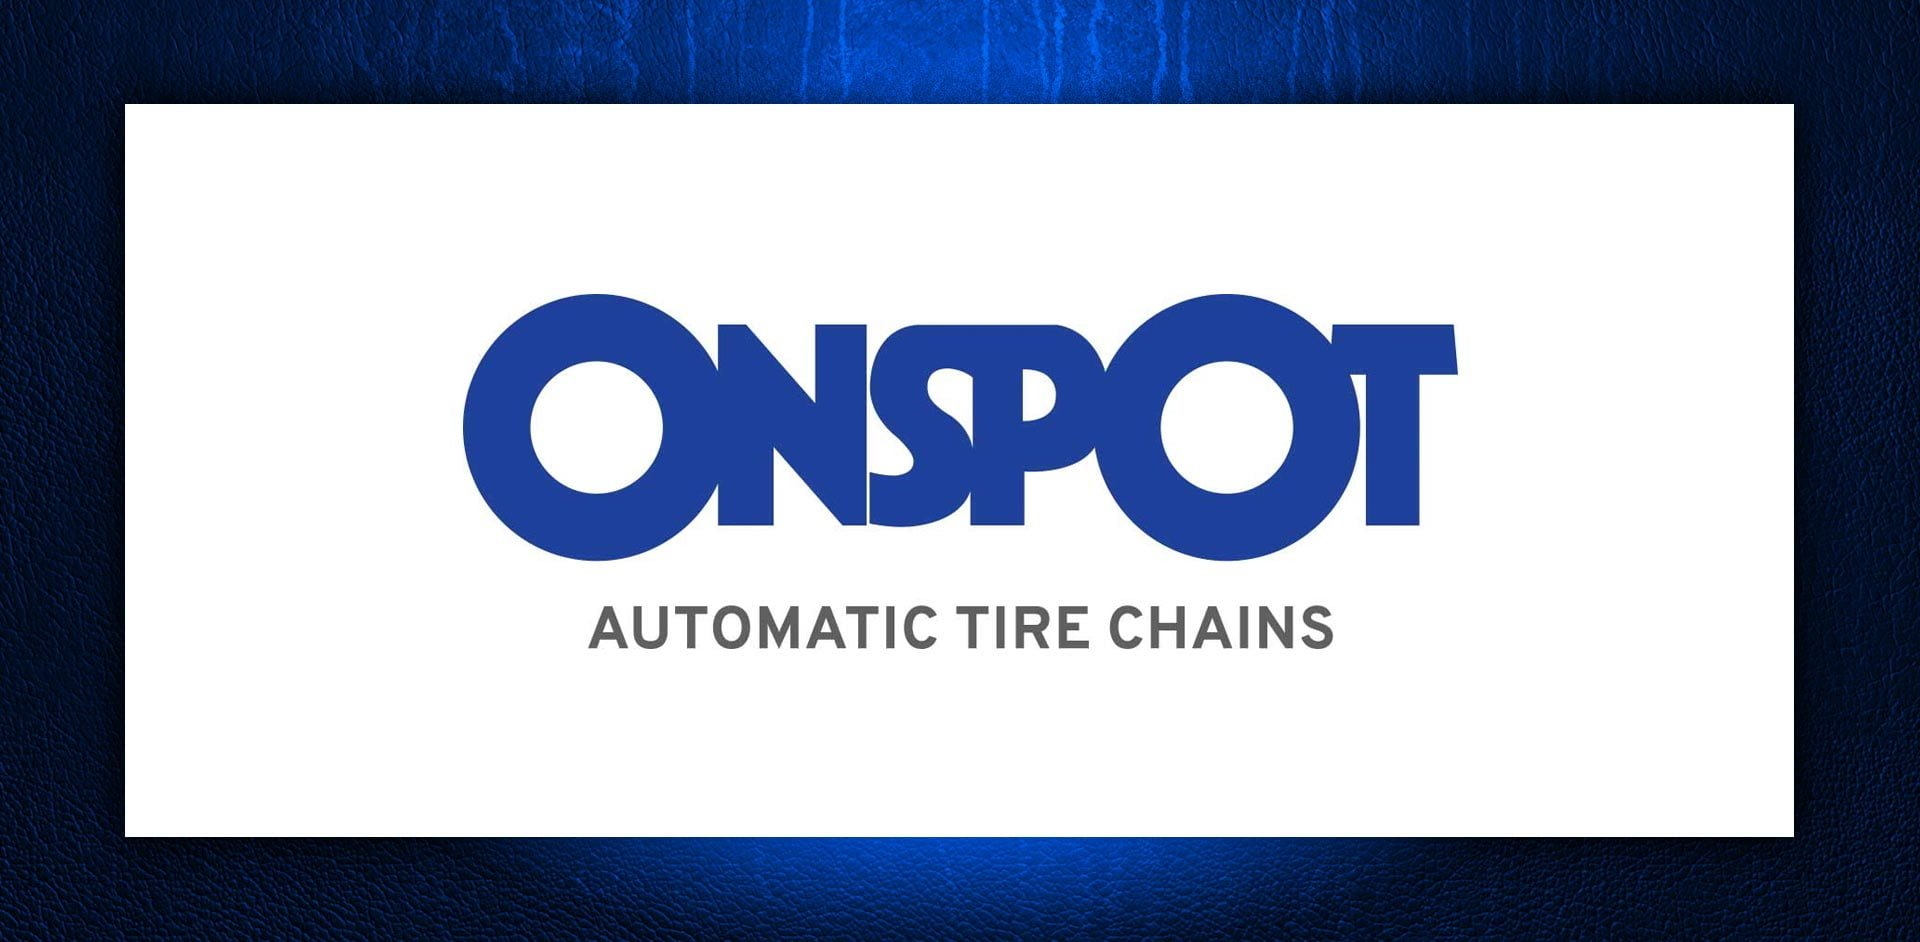 Onspot Automatic Tire Chains